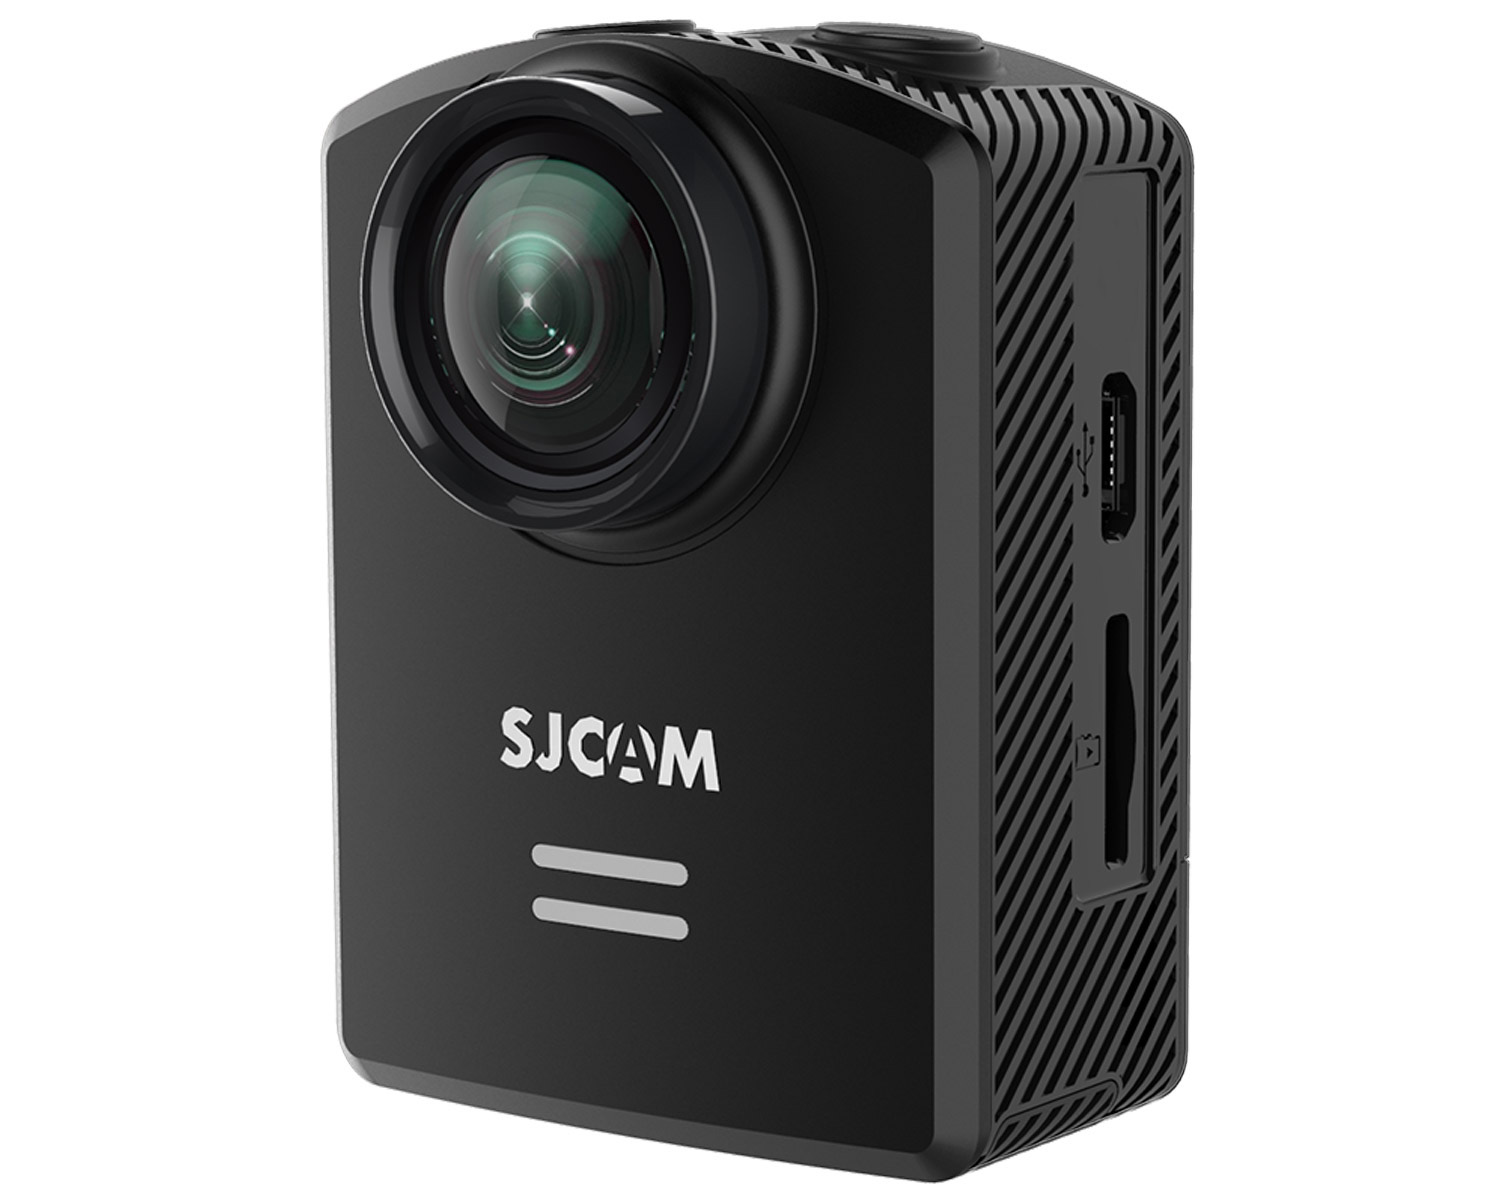 Update Firmware of your camera • SJCAM Official Website